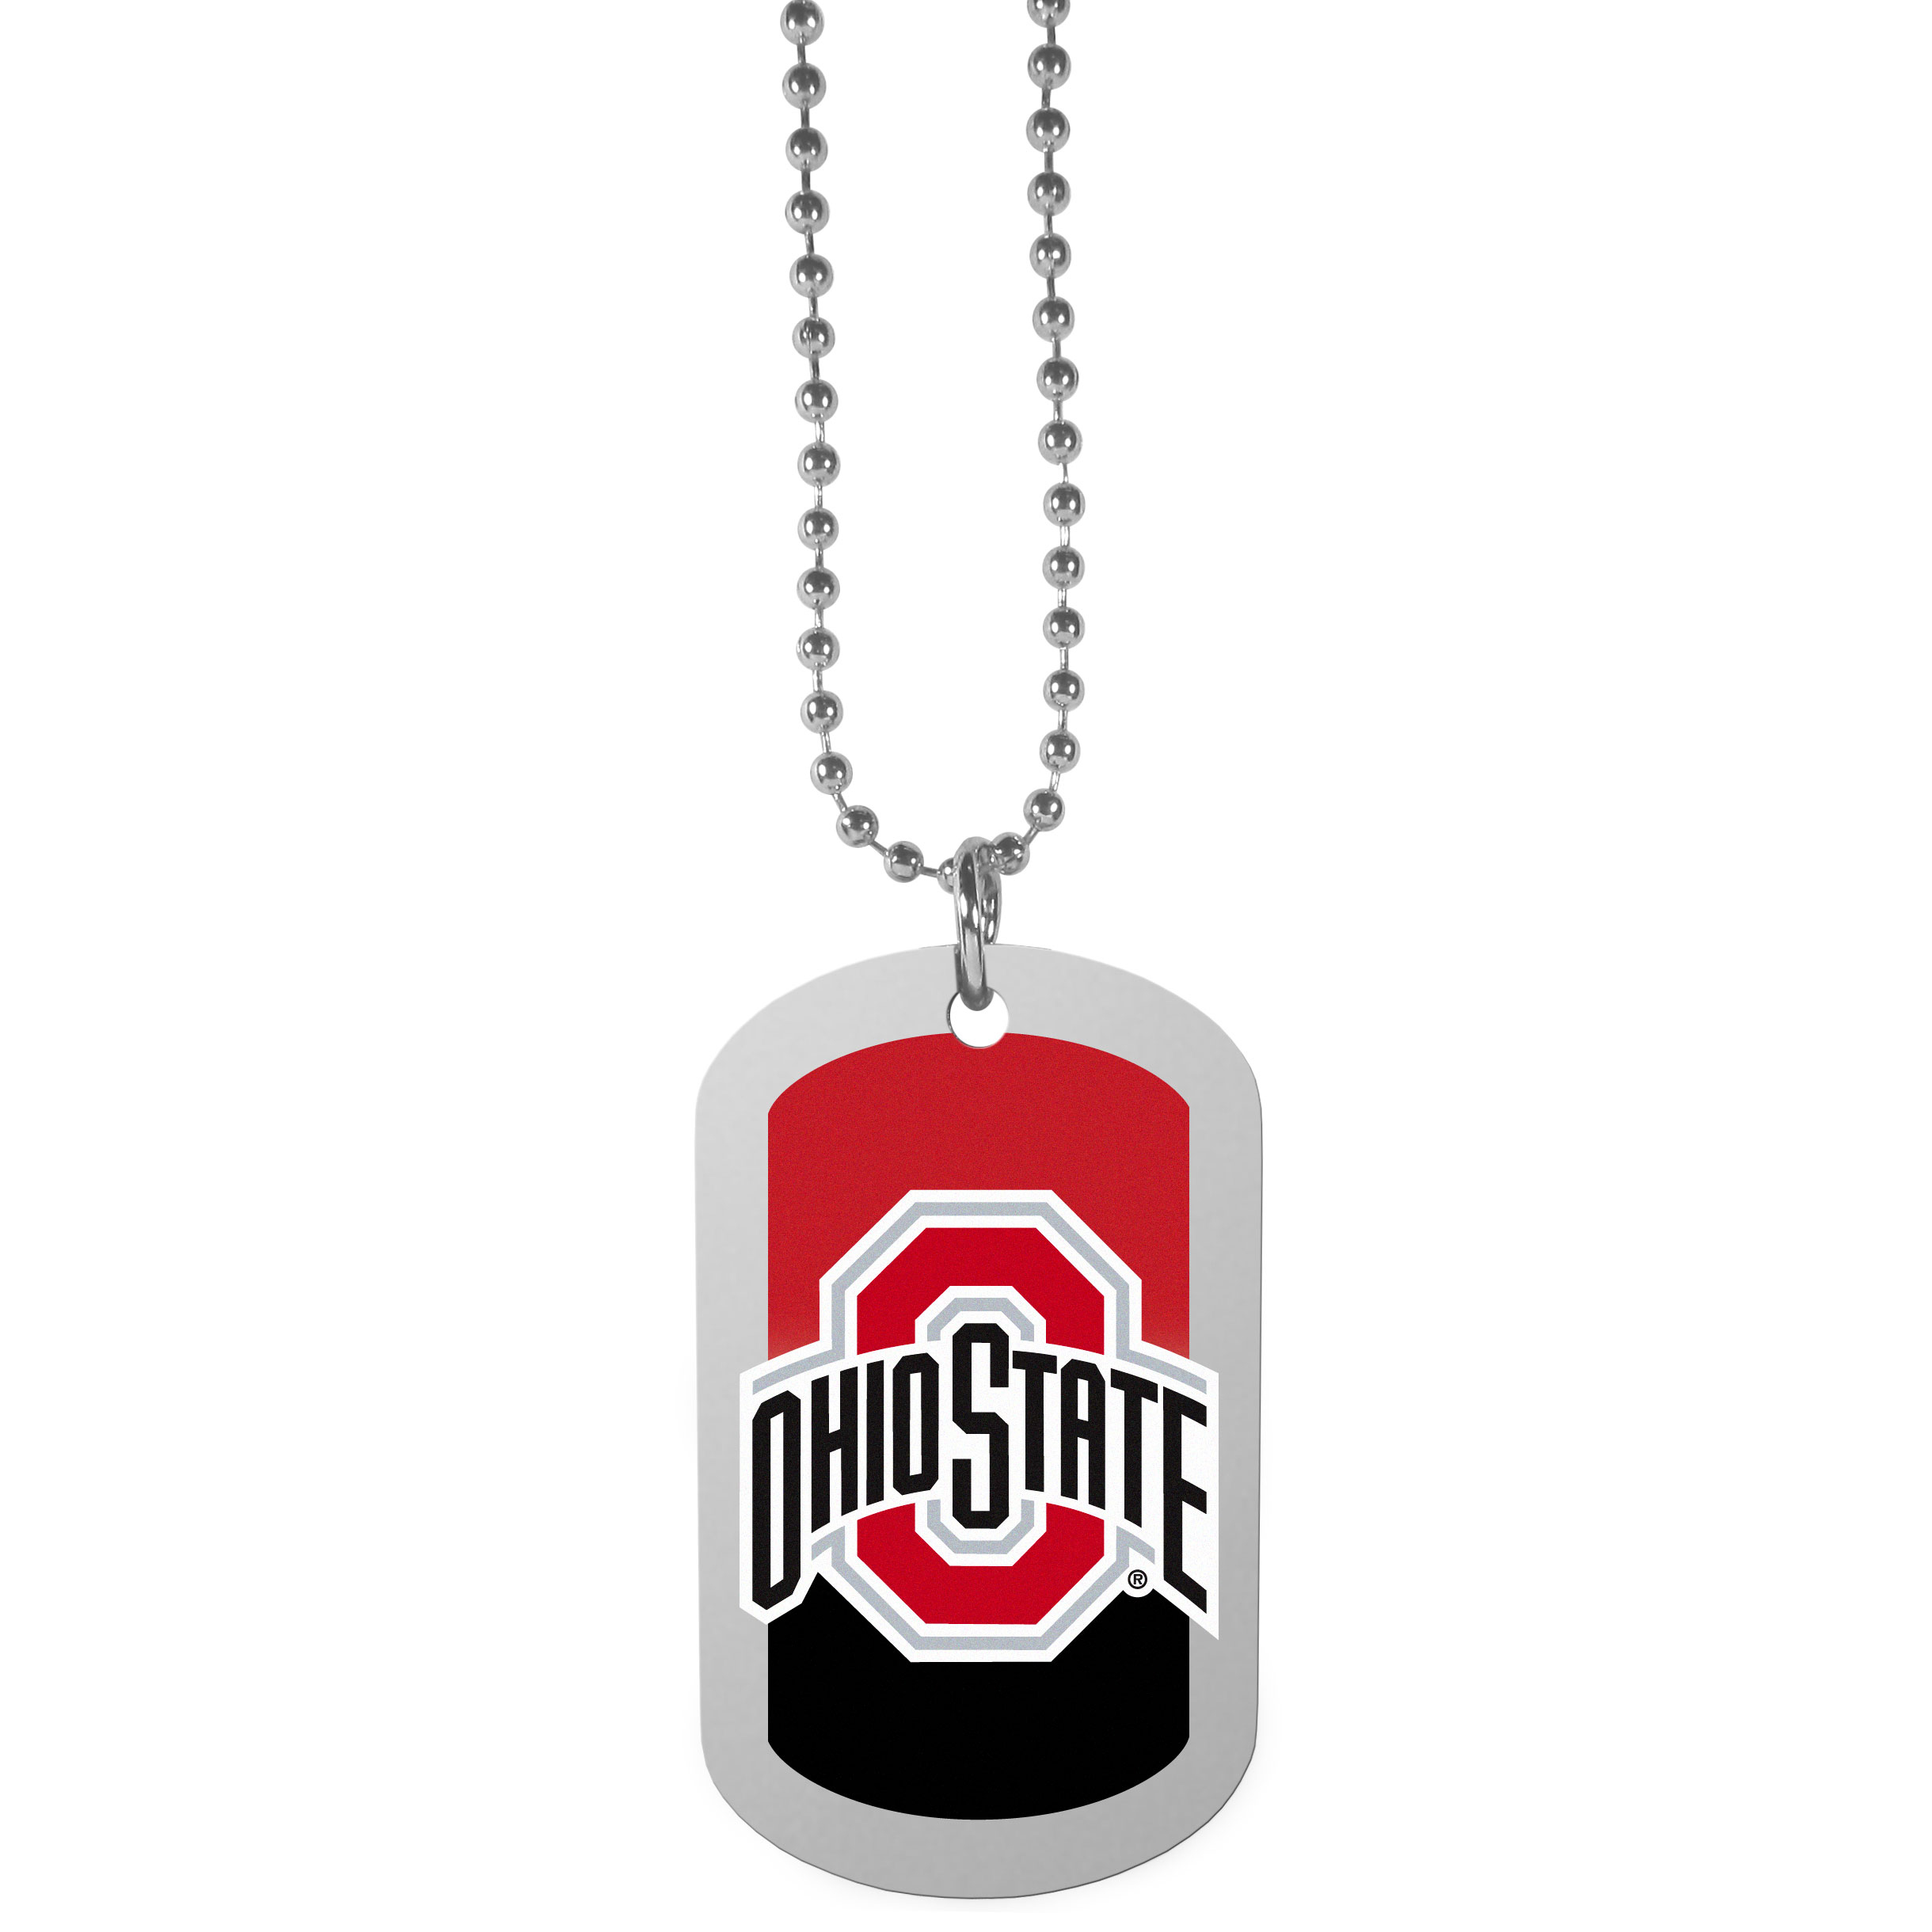 Ohio St. Buckeyes Team Tag Necklace - Dog tag necklaces are a fashion statement that is here to stay. The sporty version of the classic tag features a gradient print in team colors featuring a full color team logo over a high polish tag to create a bold and sporty look. The tag comes on a 26 inch ball chain with a ball and joint clasp. Any Ohio St. Buckeyes would be proud to wear this attractive fashion accessory.